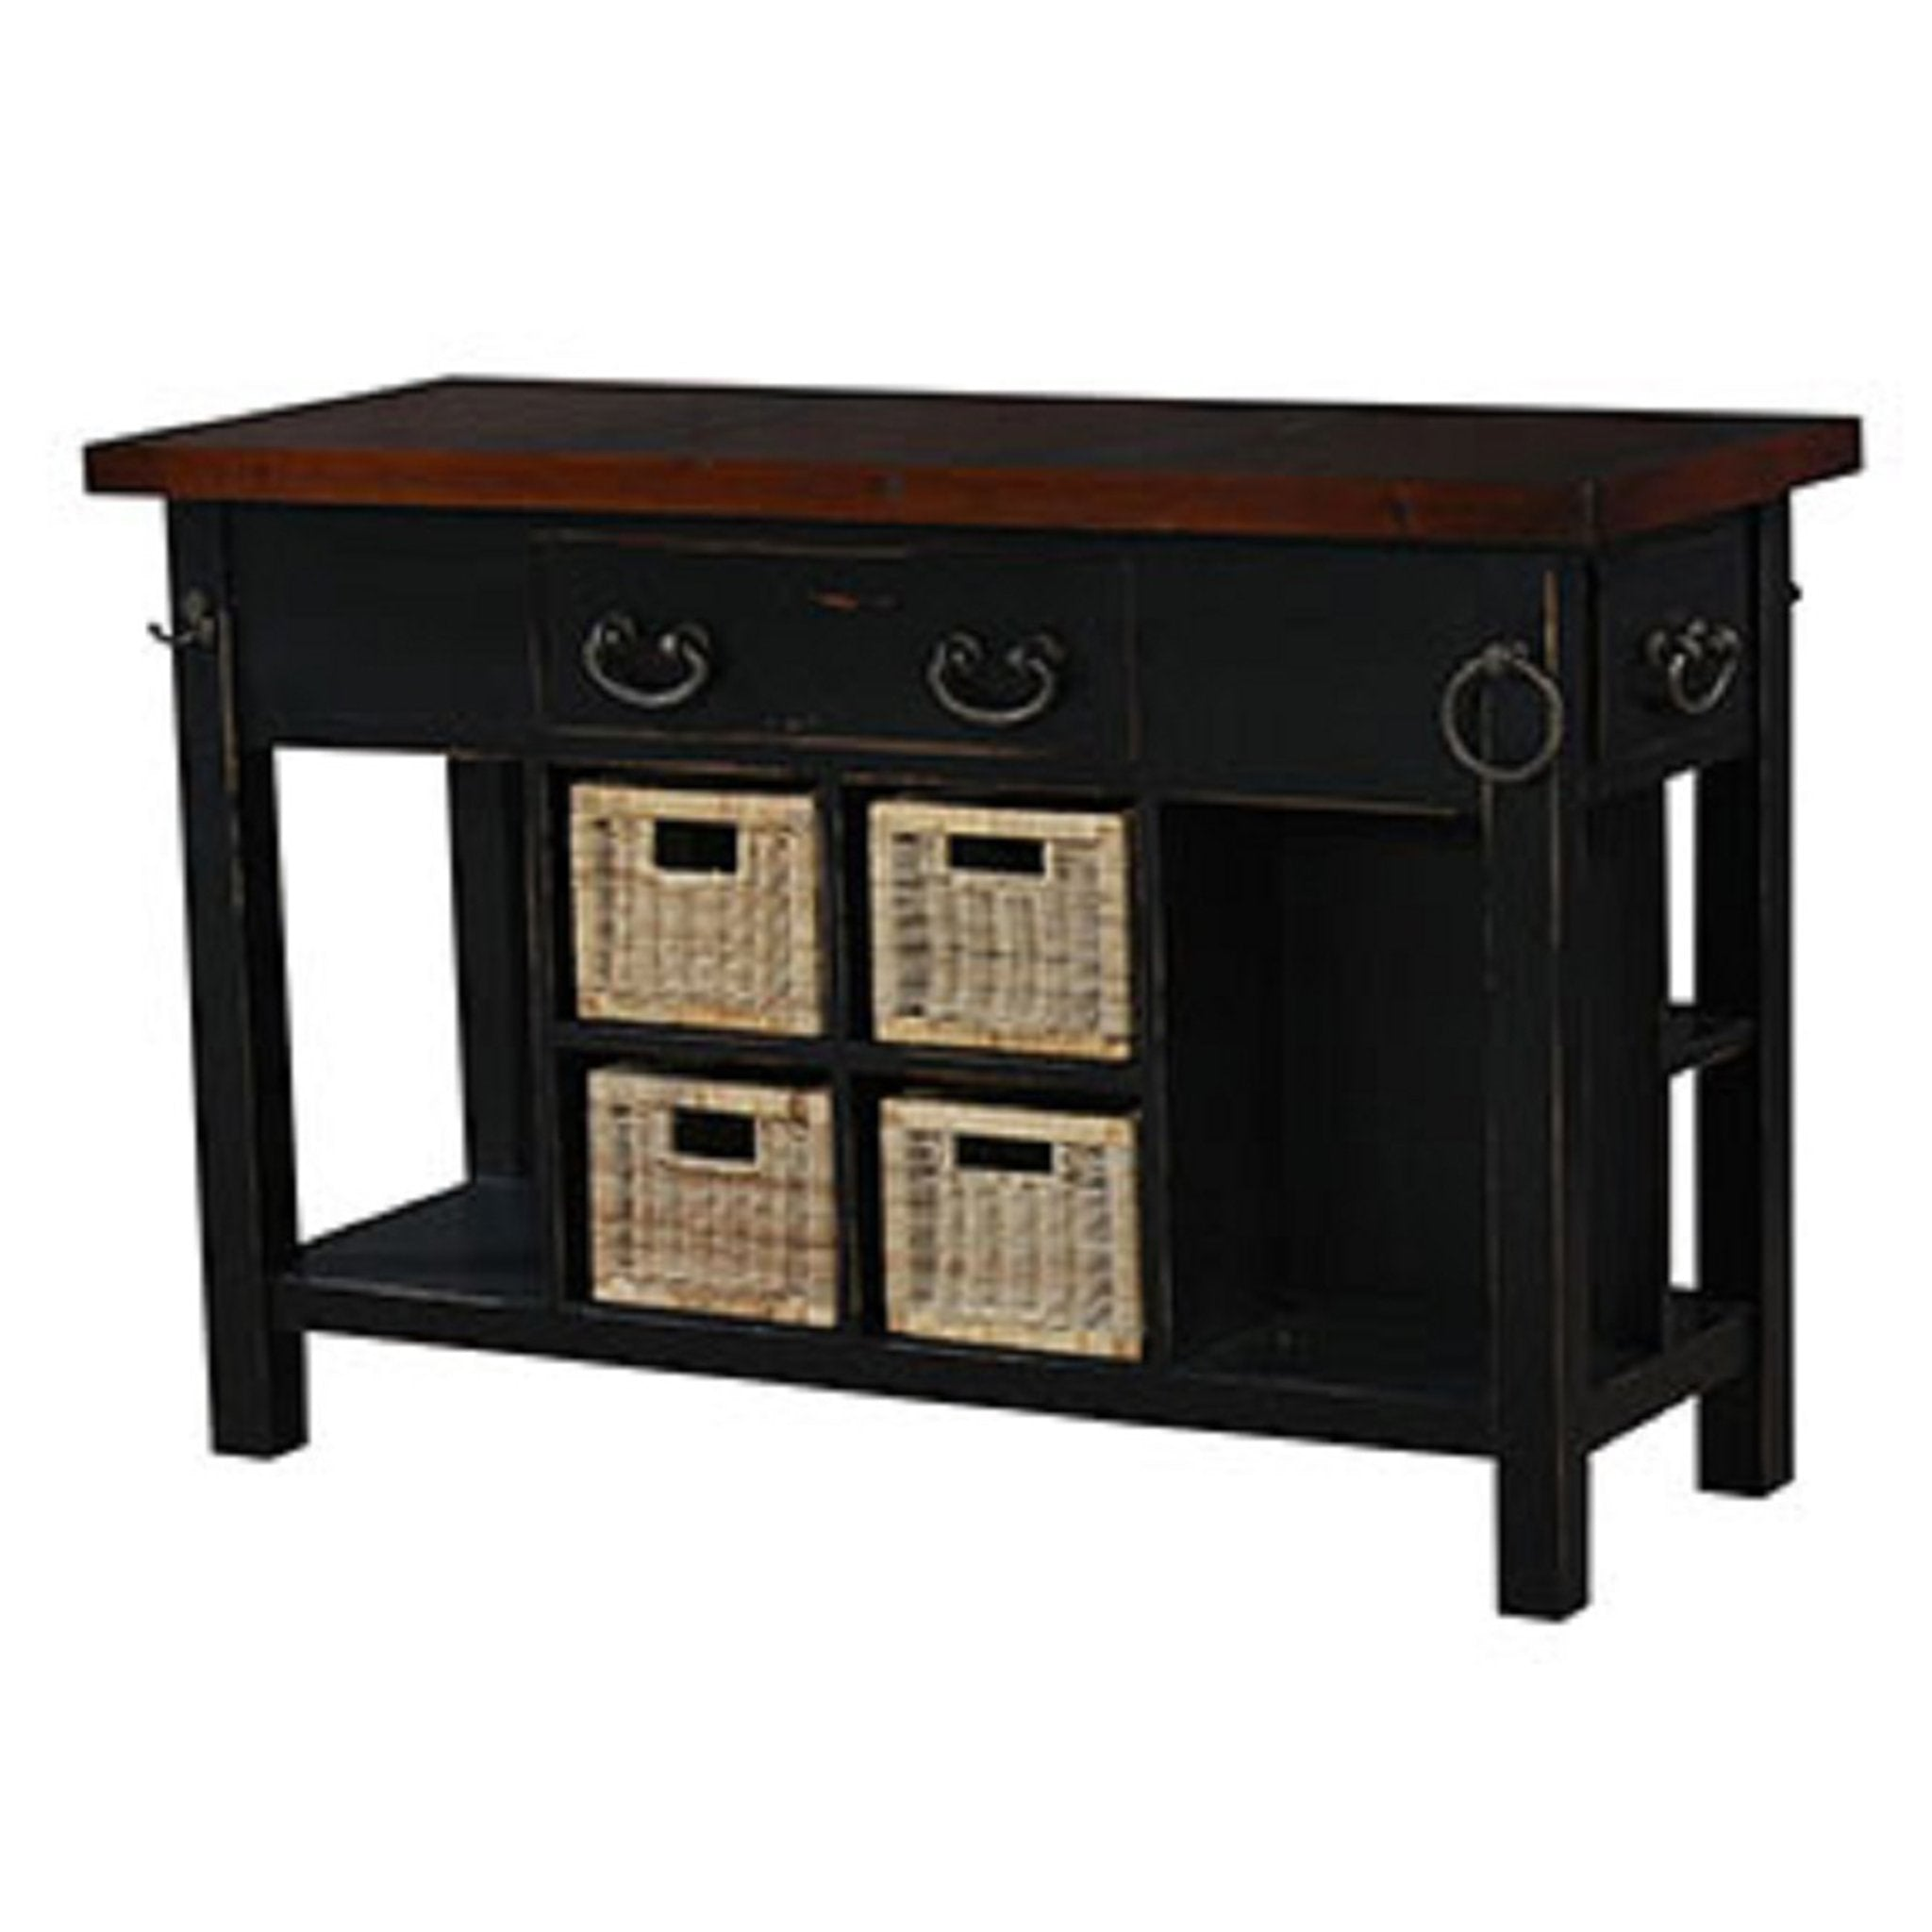 4 Center Baskets Kitchen Island Black Distressed - Furniture on Main